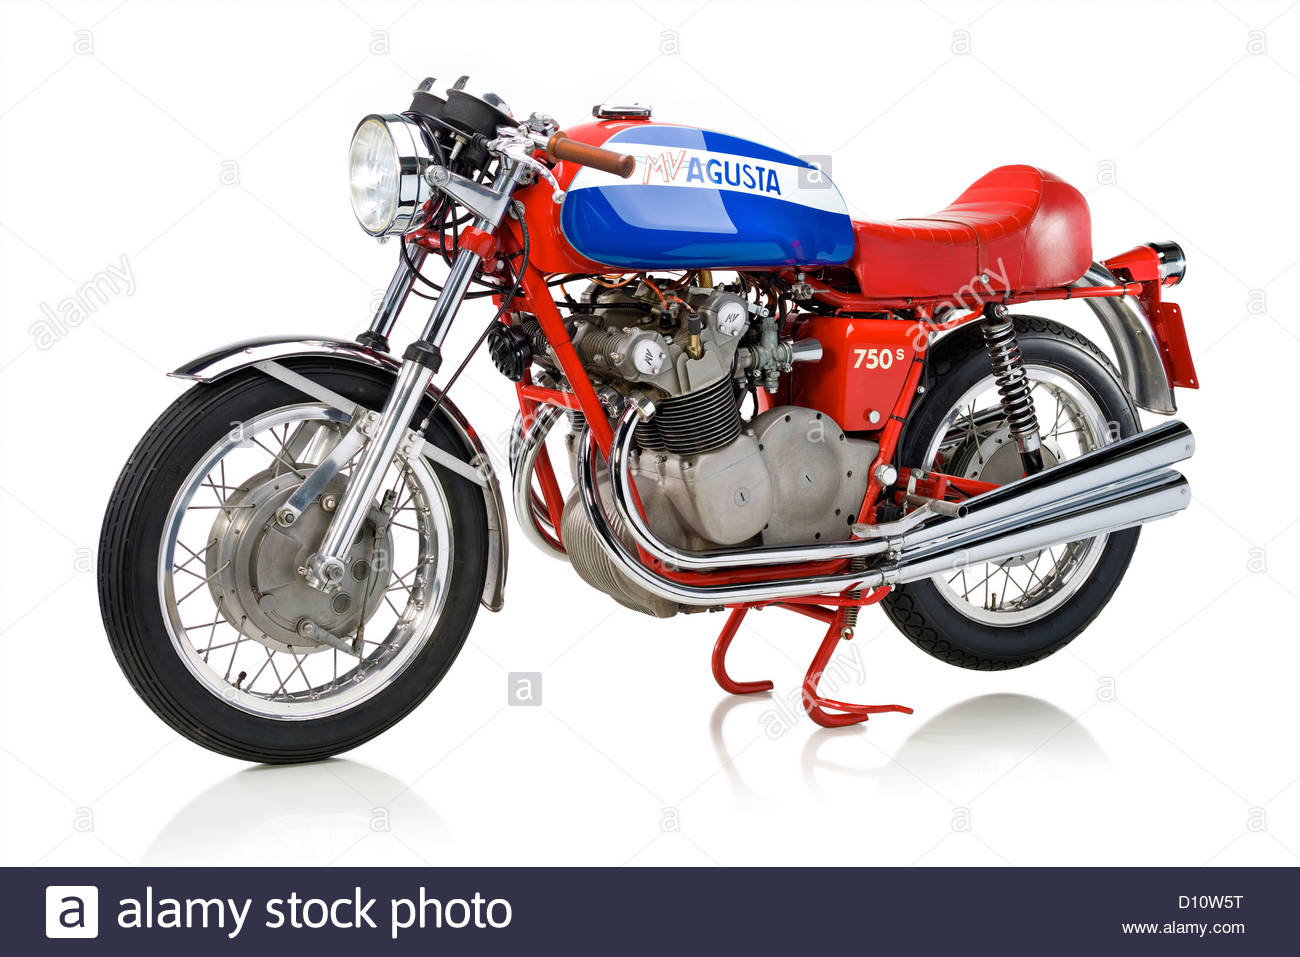 MV Agusta 750 S 1972 images #113248